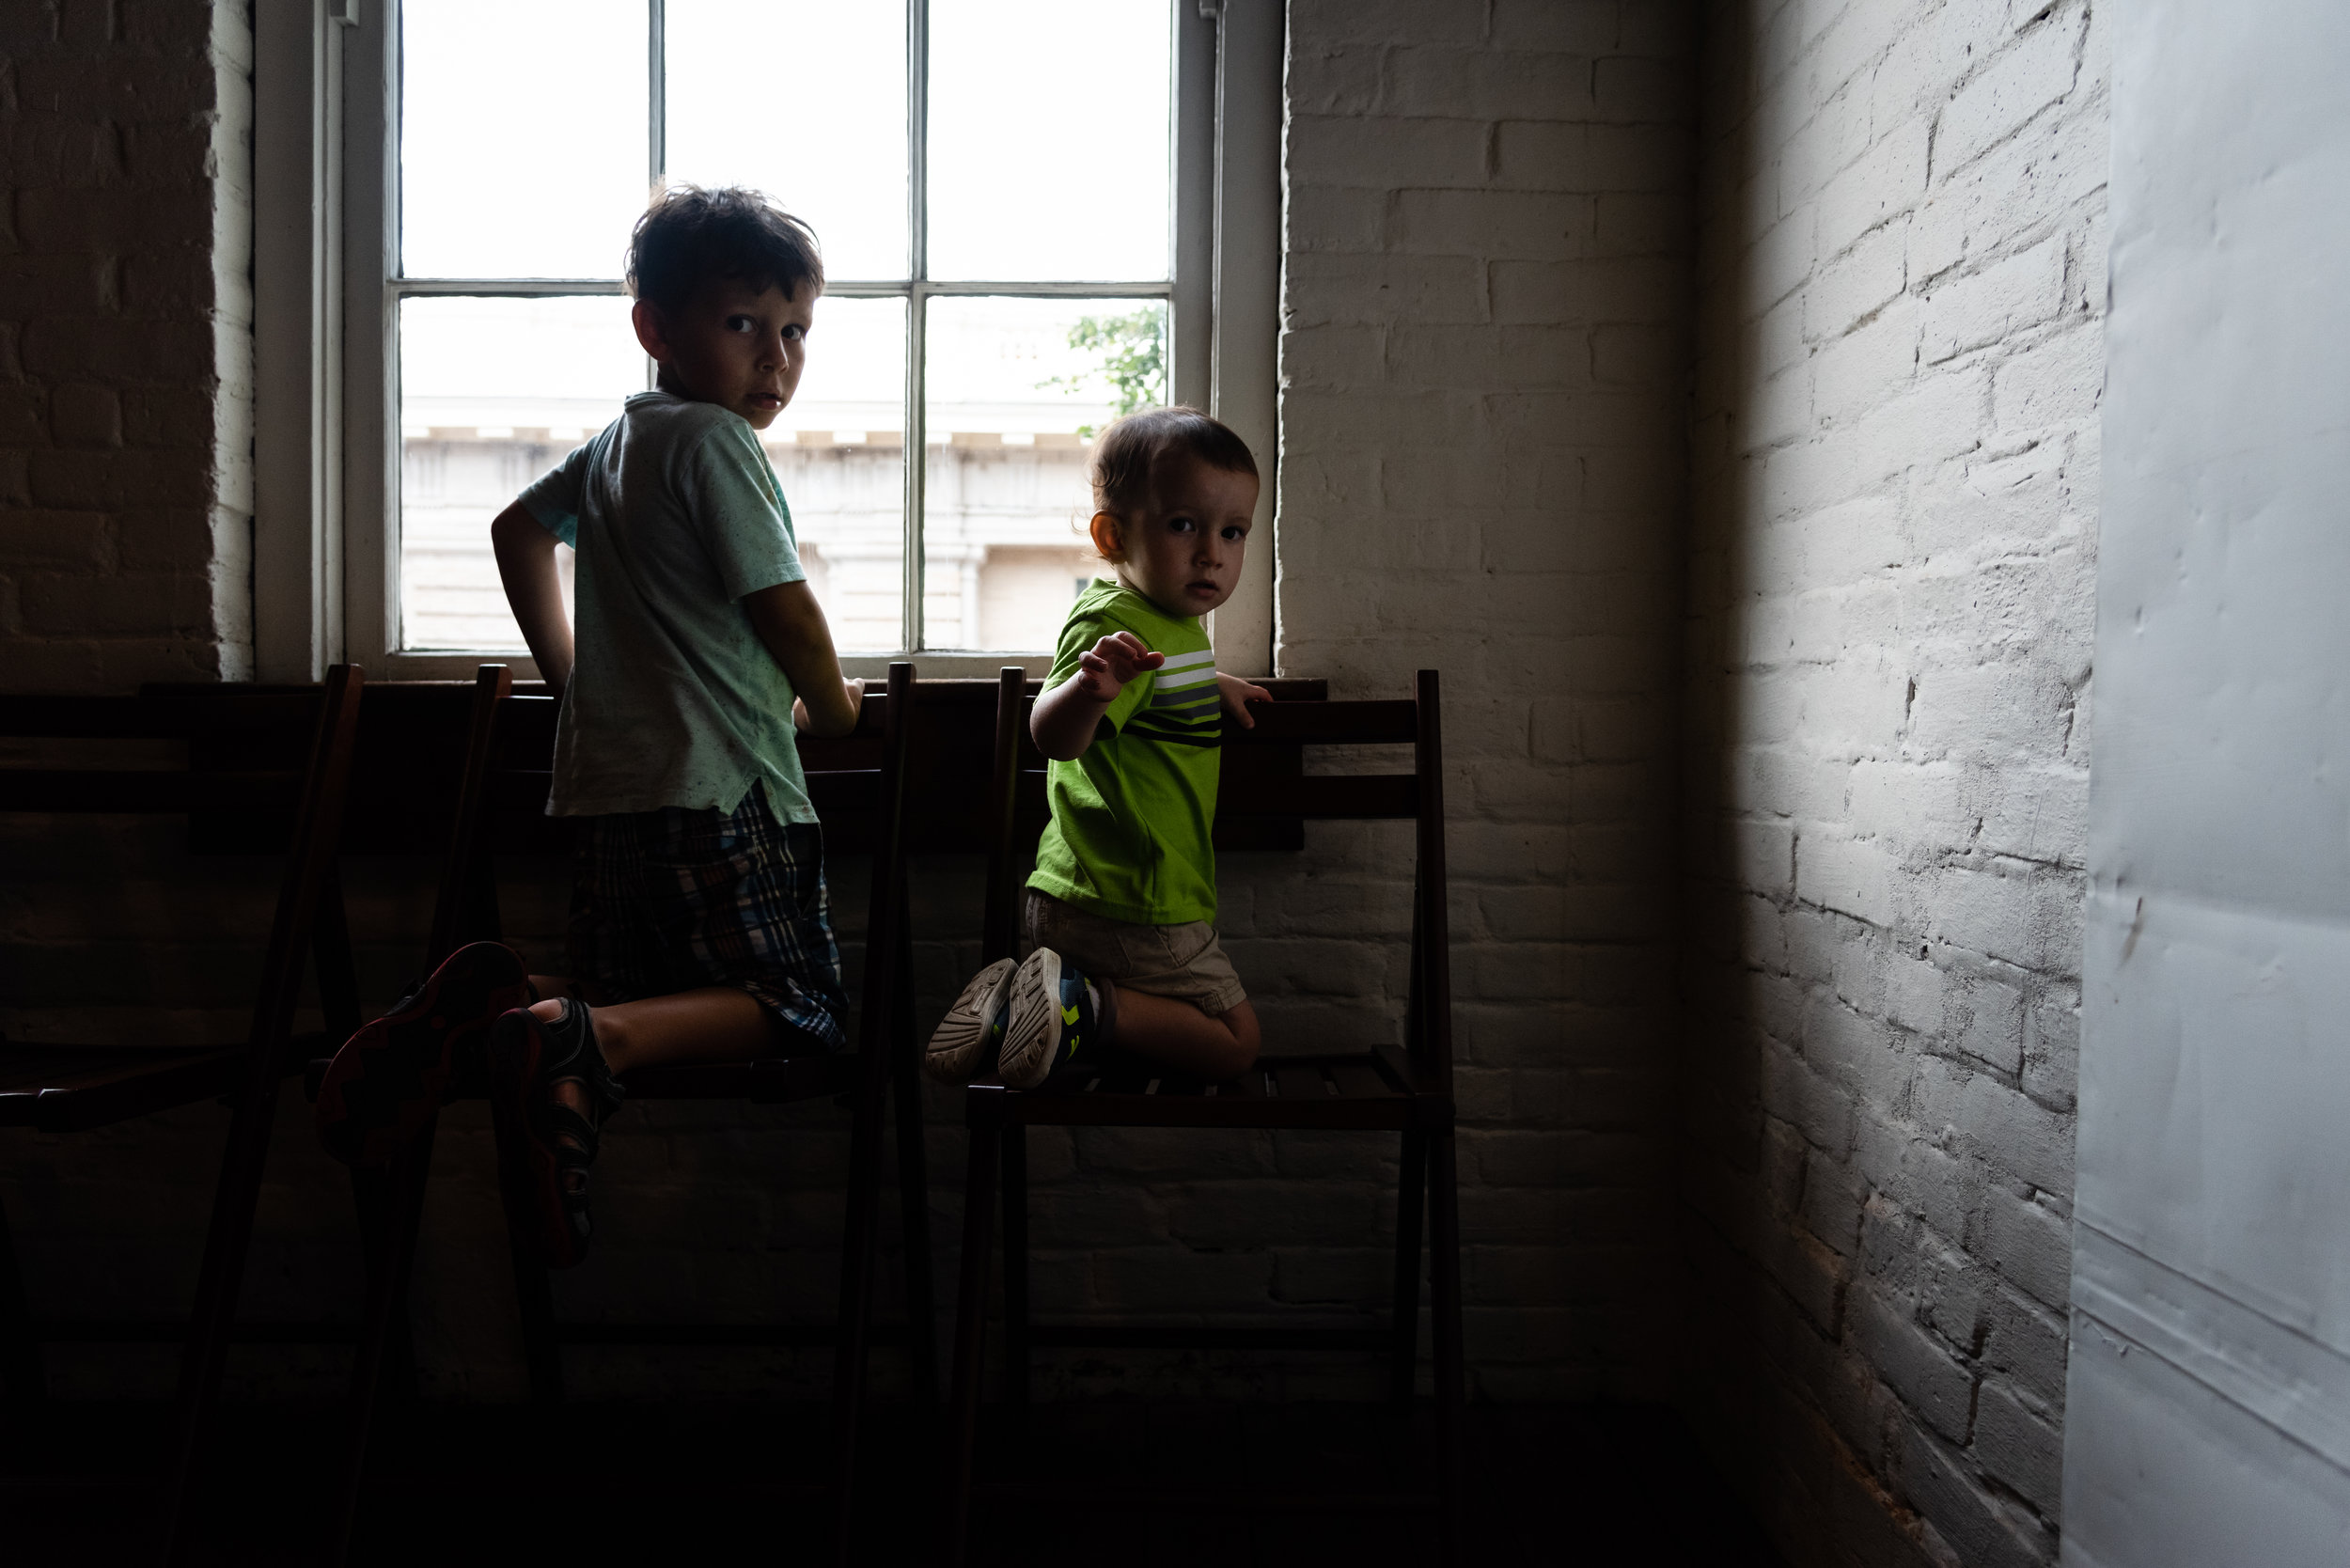 Boys looking out window at Stabler-Leadbeater Apothecary Museum by Northern Virginia Family Photographer Nicole Sanchez